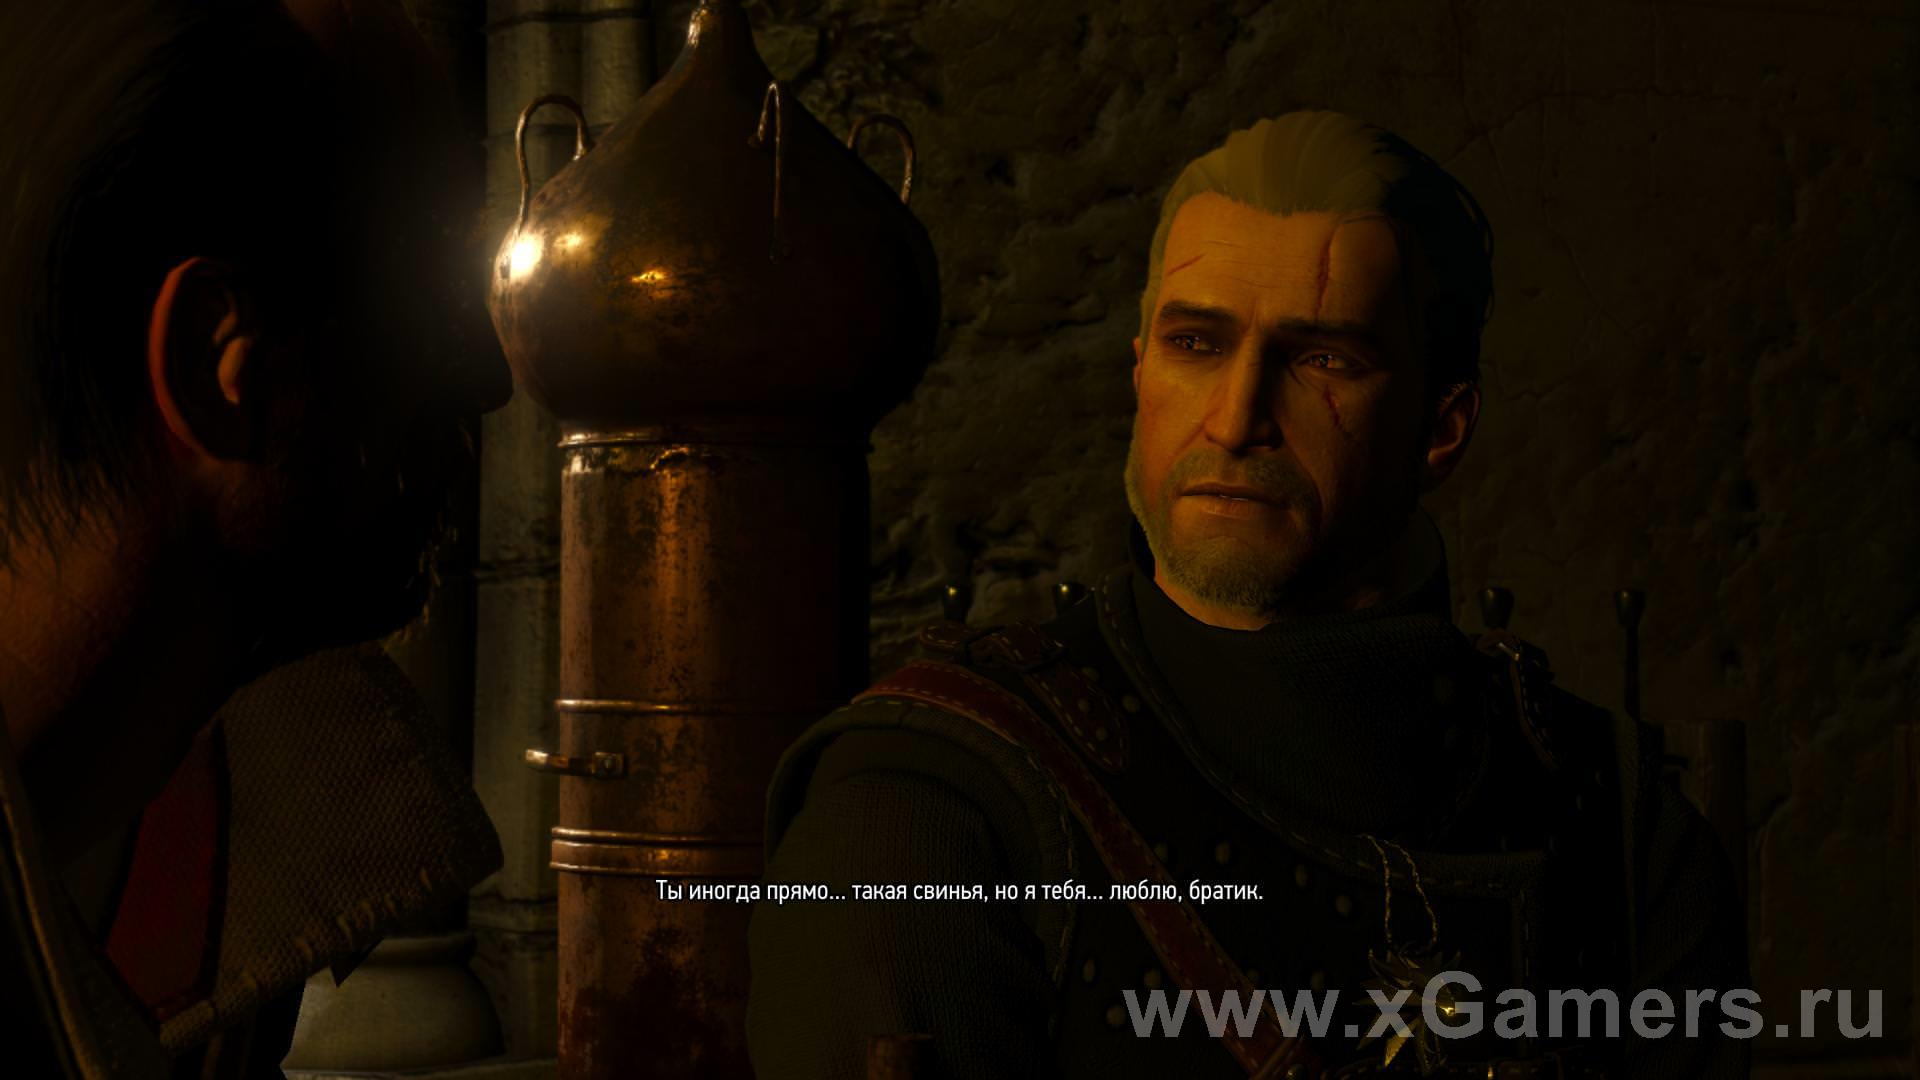 Geralt decides to talk heart to heart with Lambert